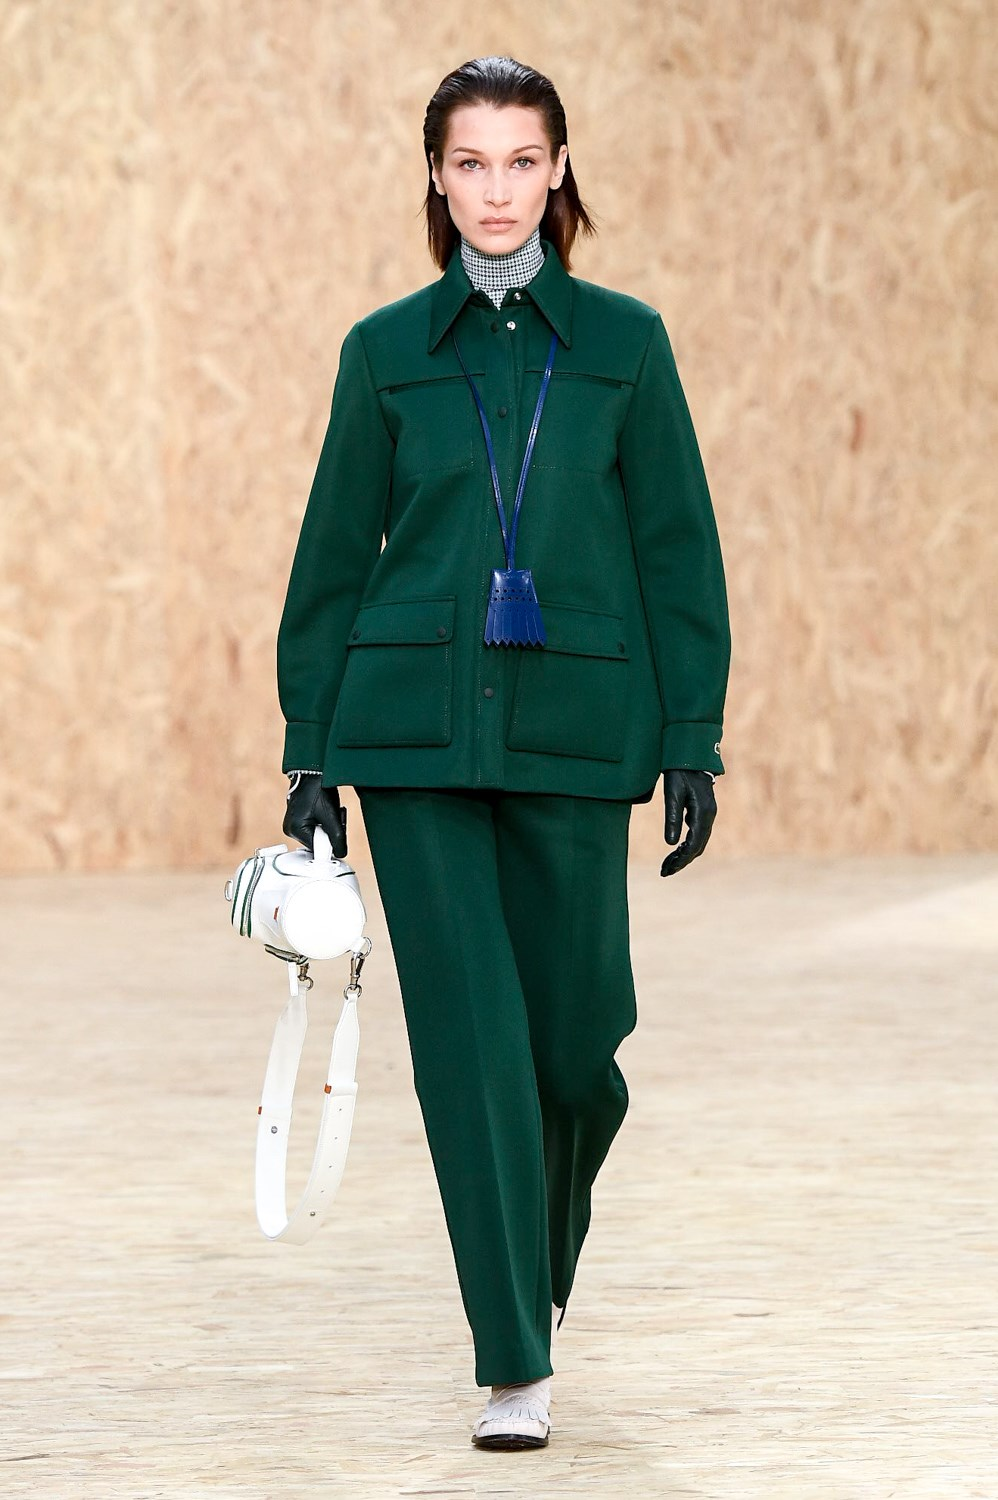 Lacoste Fall 2020 Fashion Show Photos